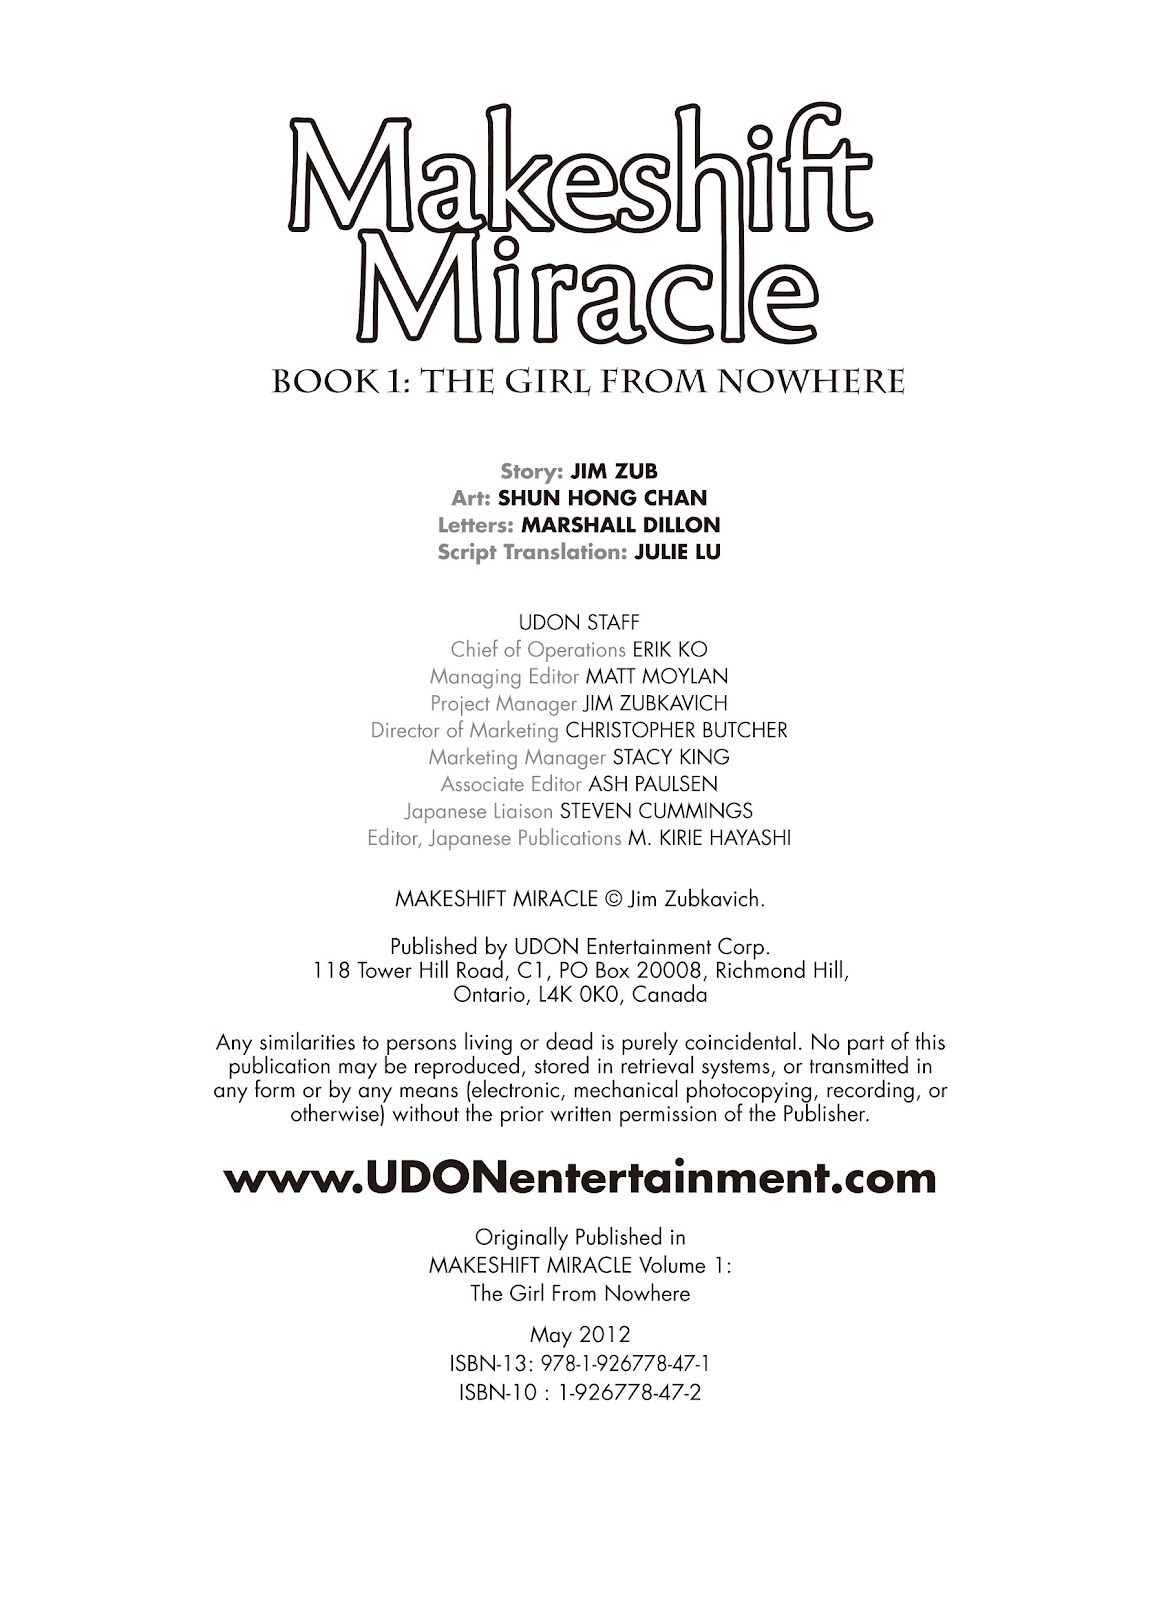 Read online Makeshift Miracle: The Girl From Nowhere comic -  Issue #3 - 2